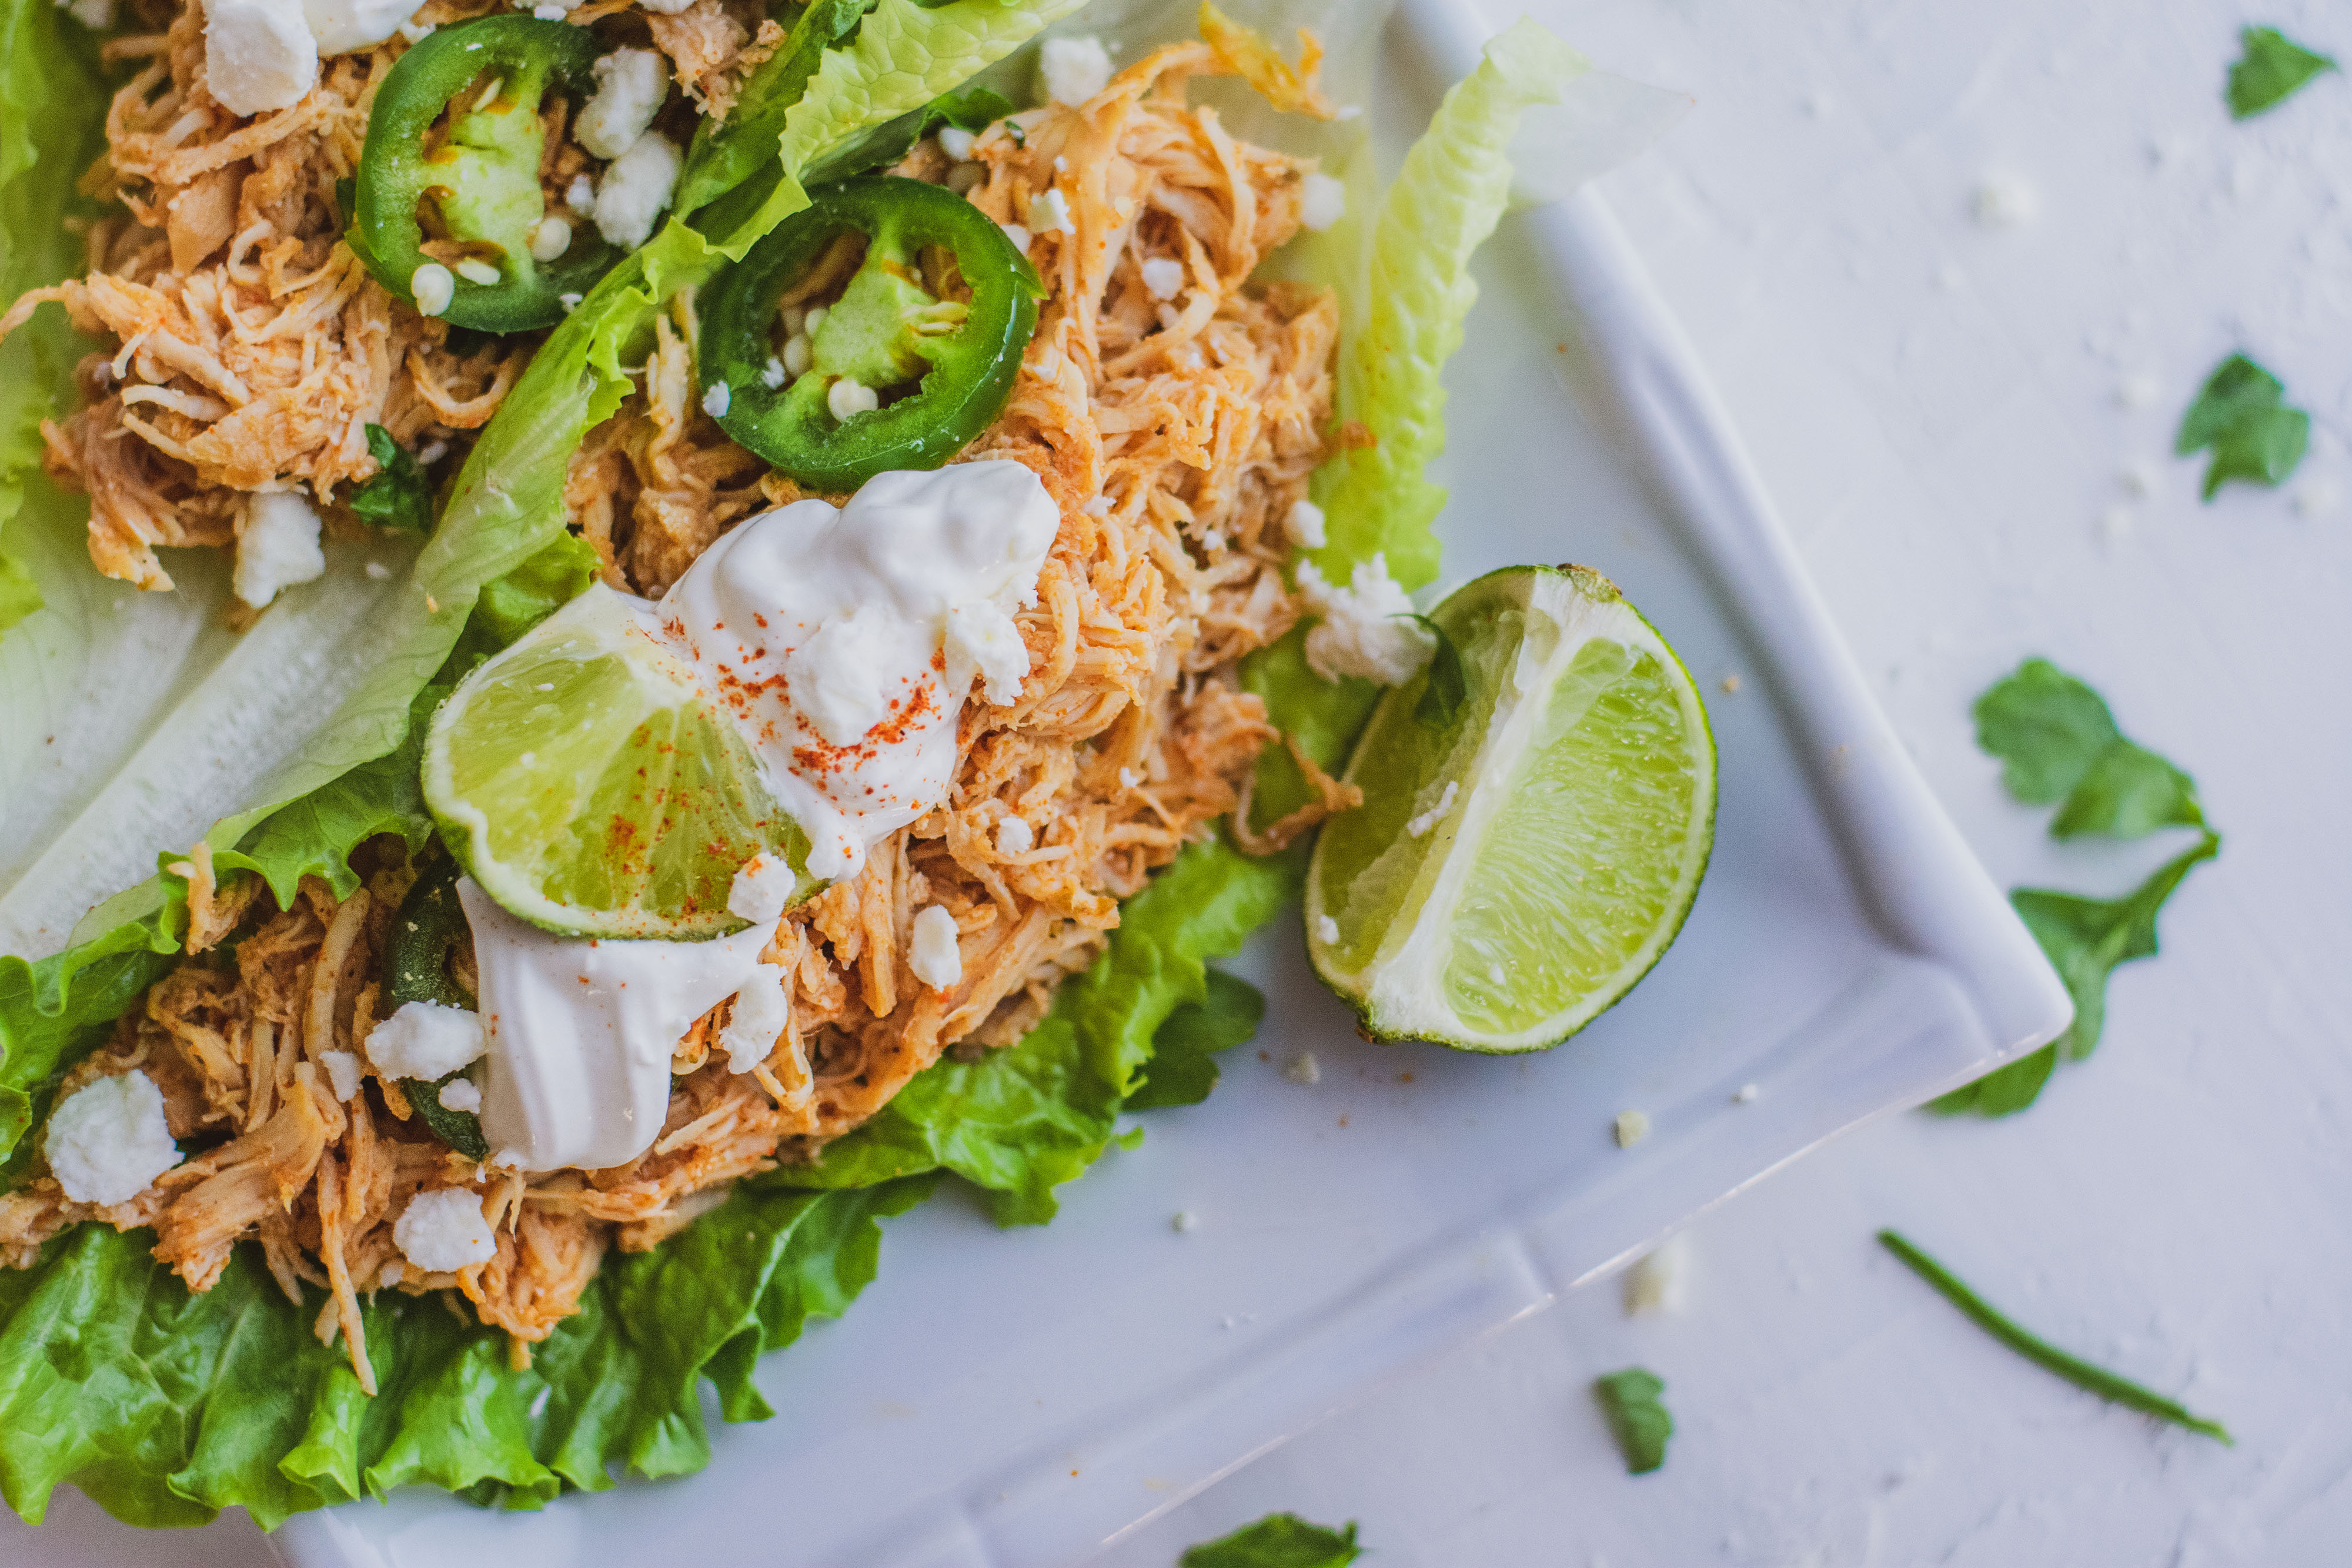 Shredded chicken tacos in lettuce wraps with fetta cheese, limes and jalapenos on top